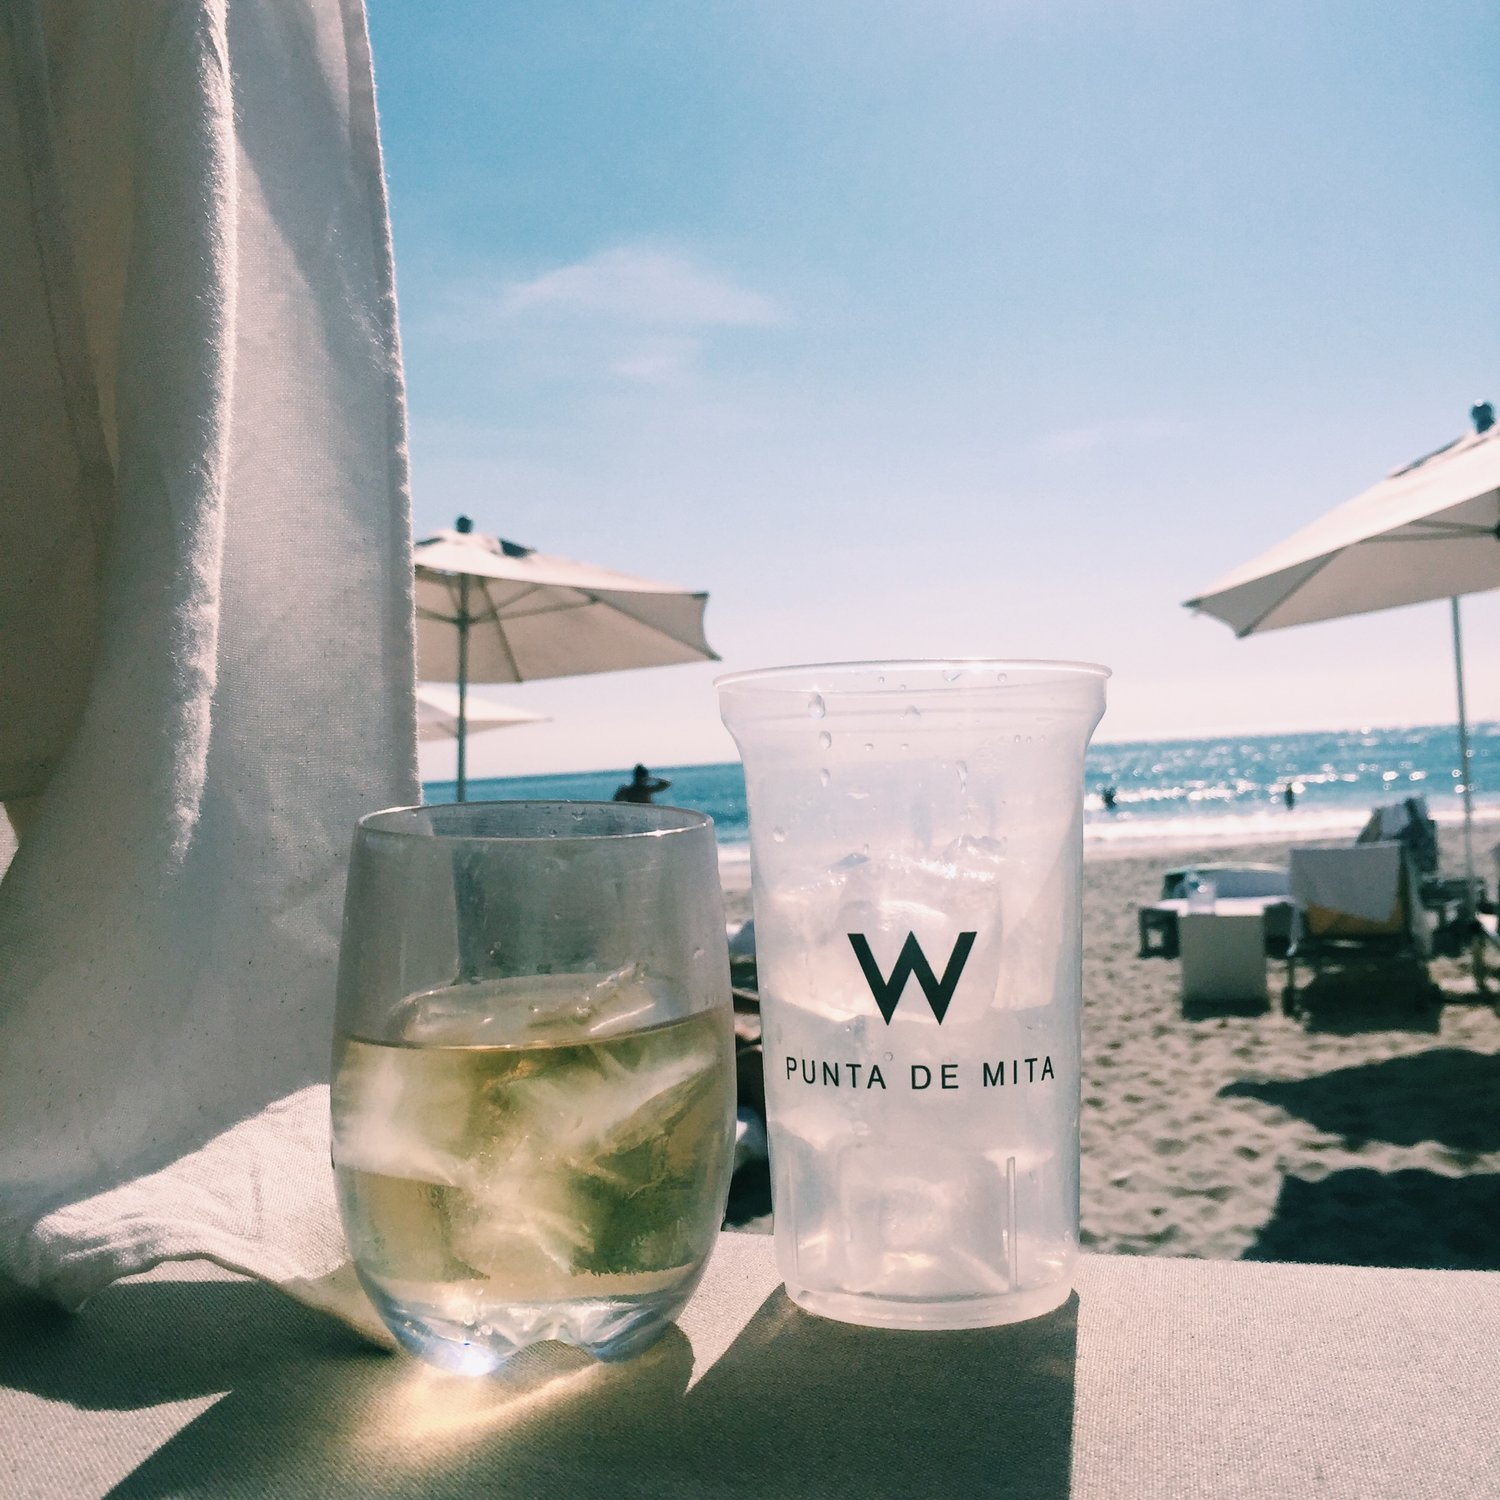 w punta mita beach bar